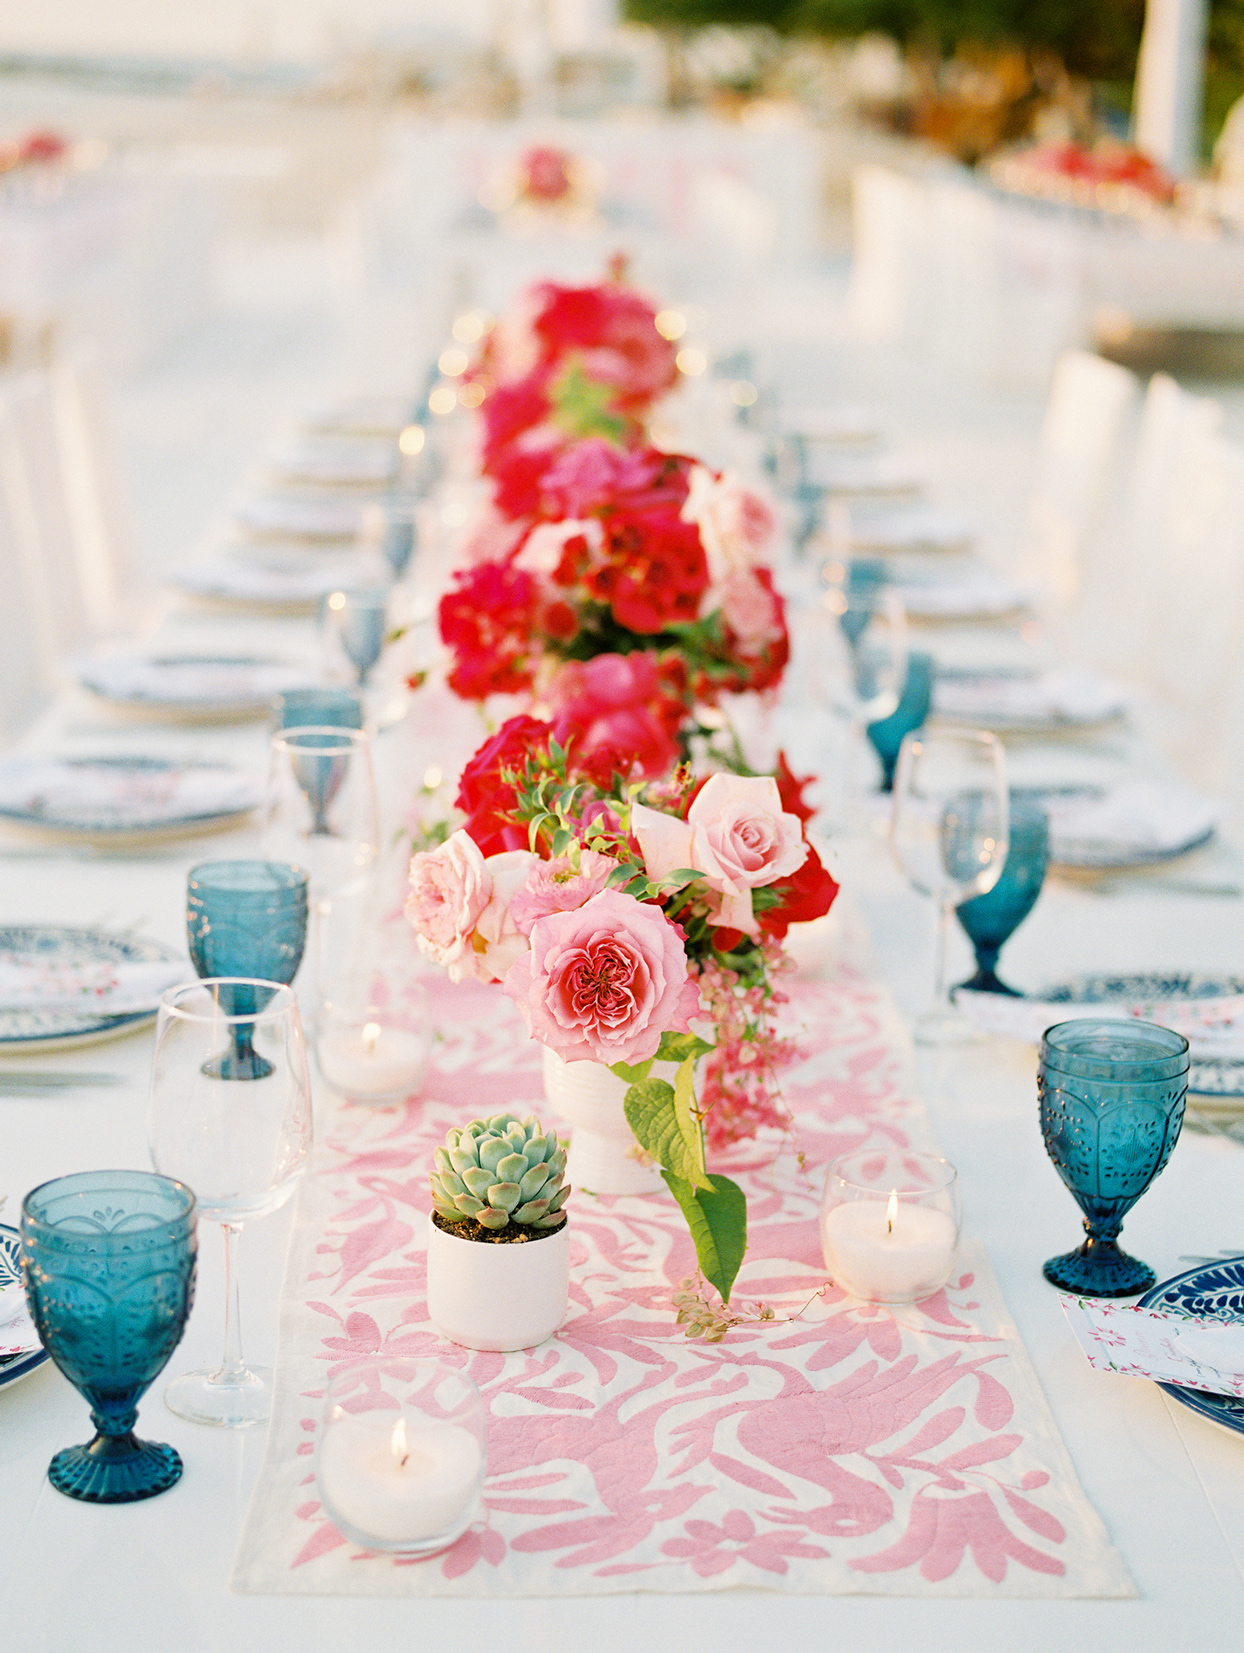 red and pink floral wedding reception table centerpieces